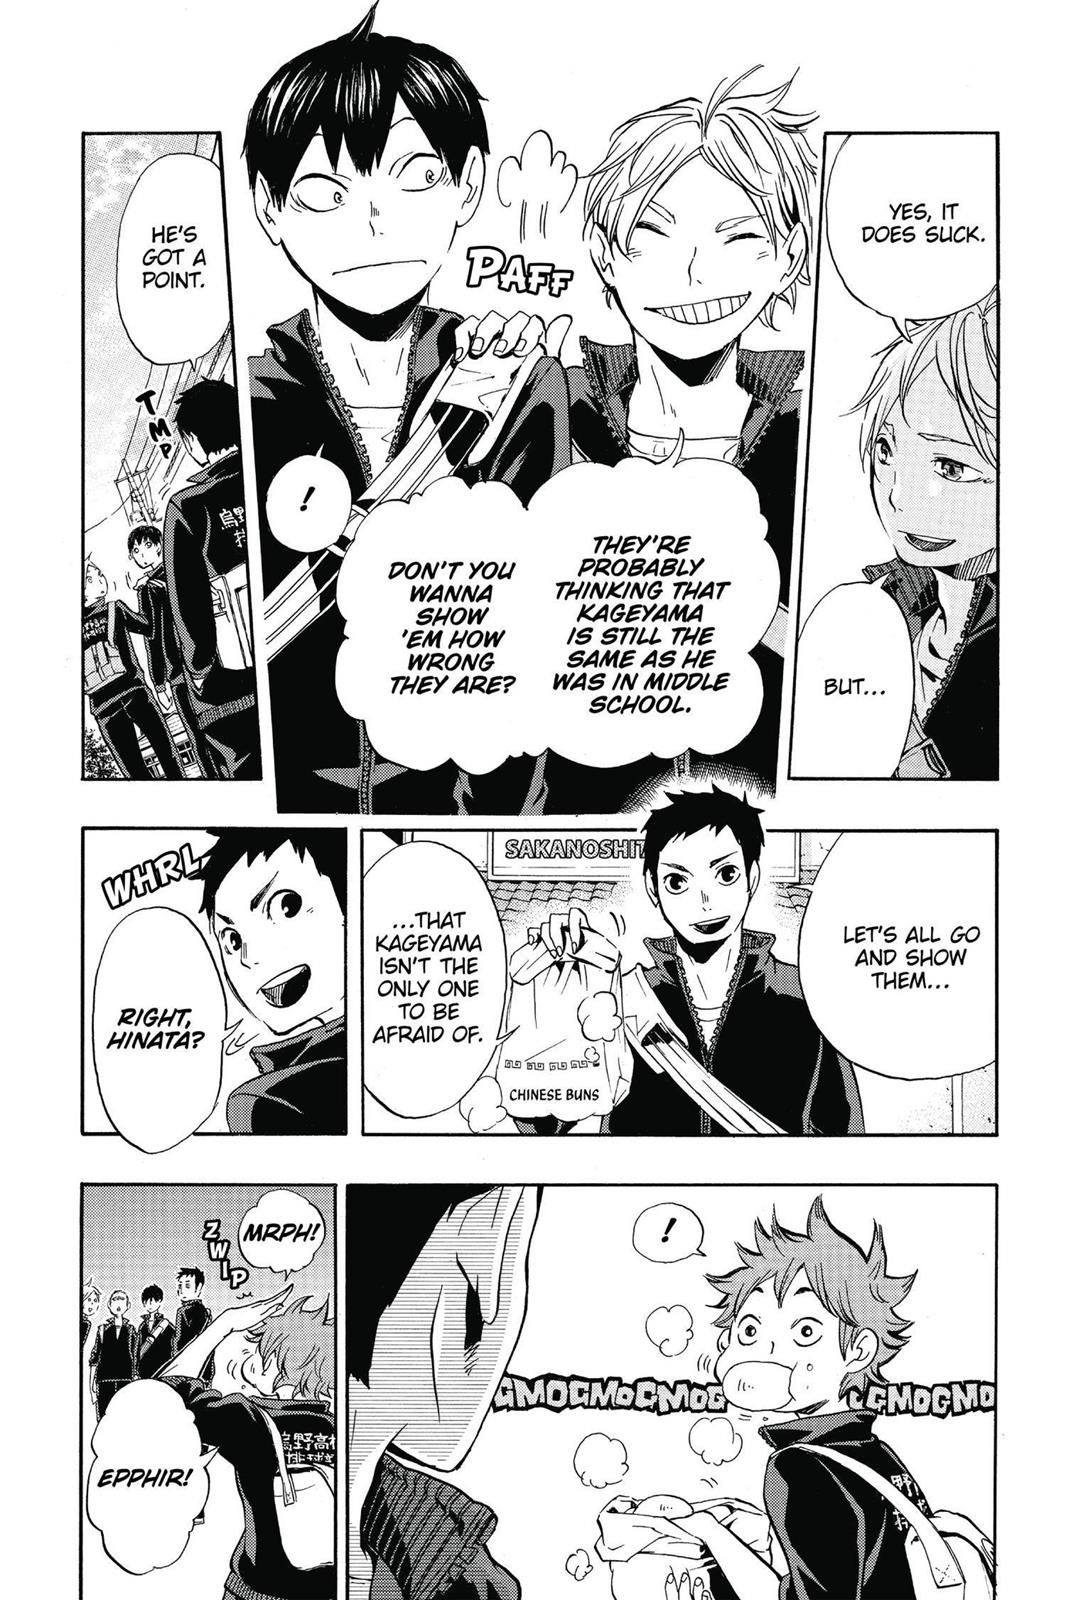 Haikyuu Chapter 10 Read Haikyuu Manga Online Haikyuu Haikyuu Manga Haikyuu Anime Переводчики grand line pirates the sleeping city project kuromori manga team anistar team risens team. read haikyuu manga online